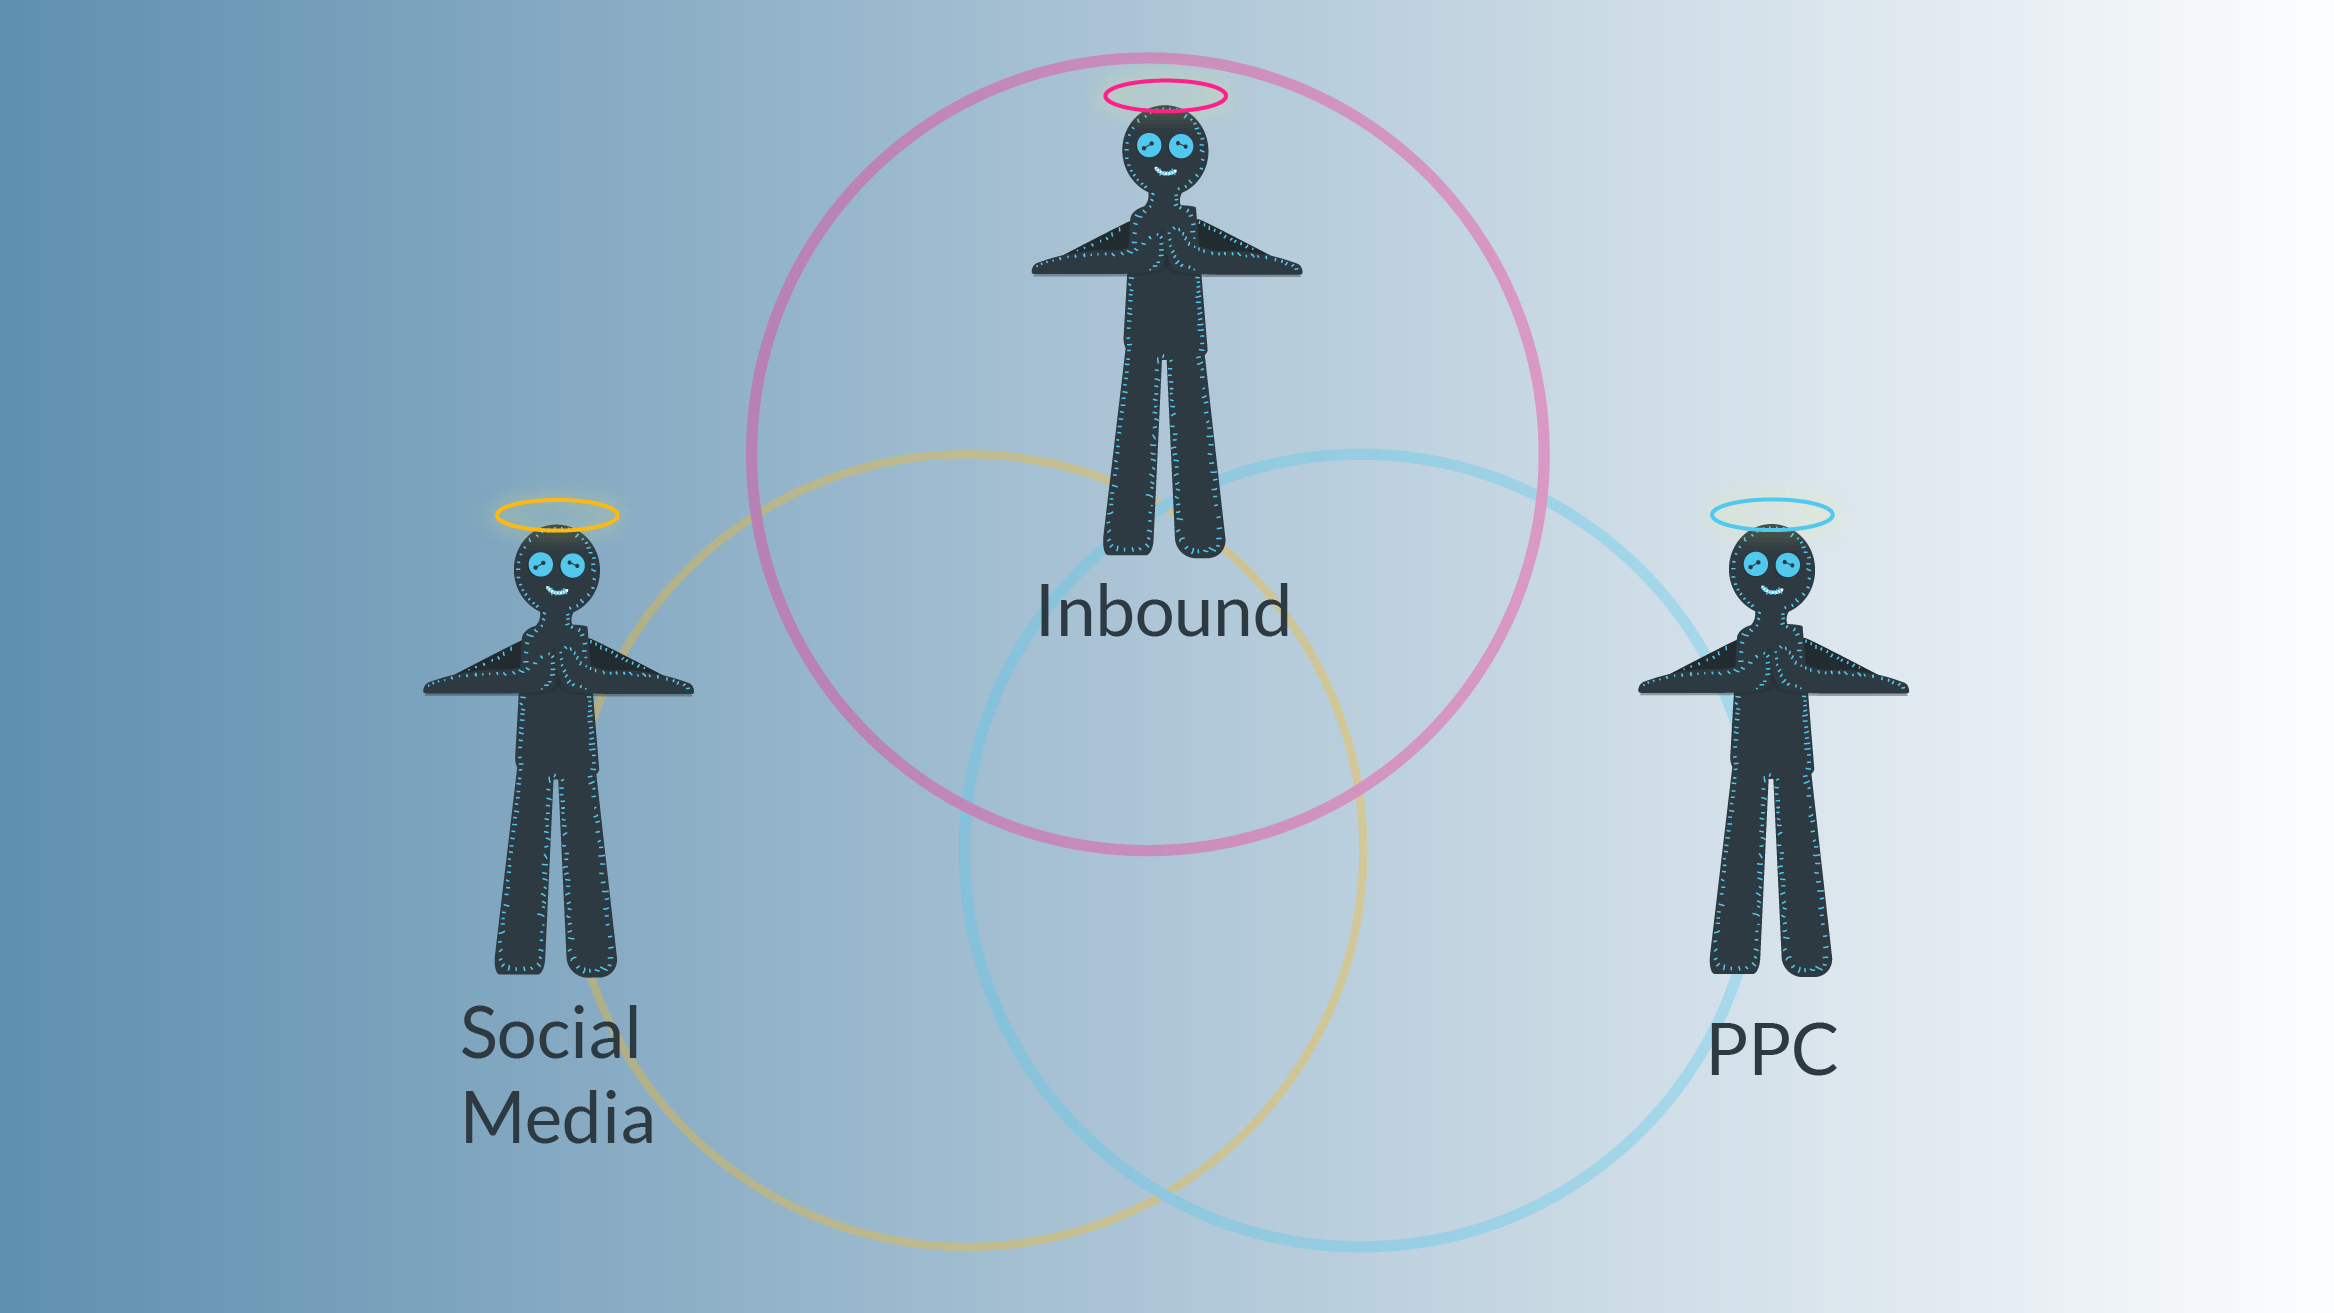 Inbound PPC and Social media